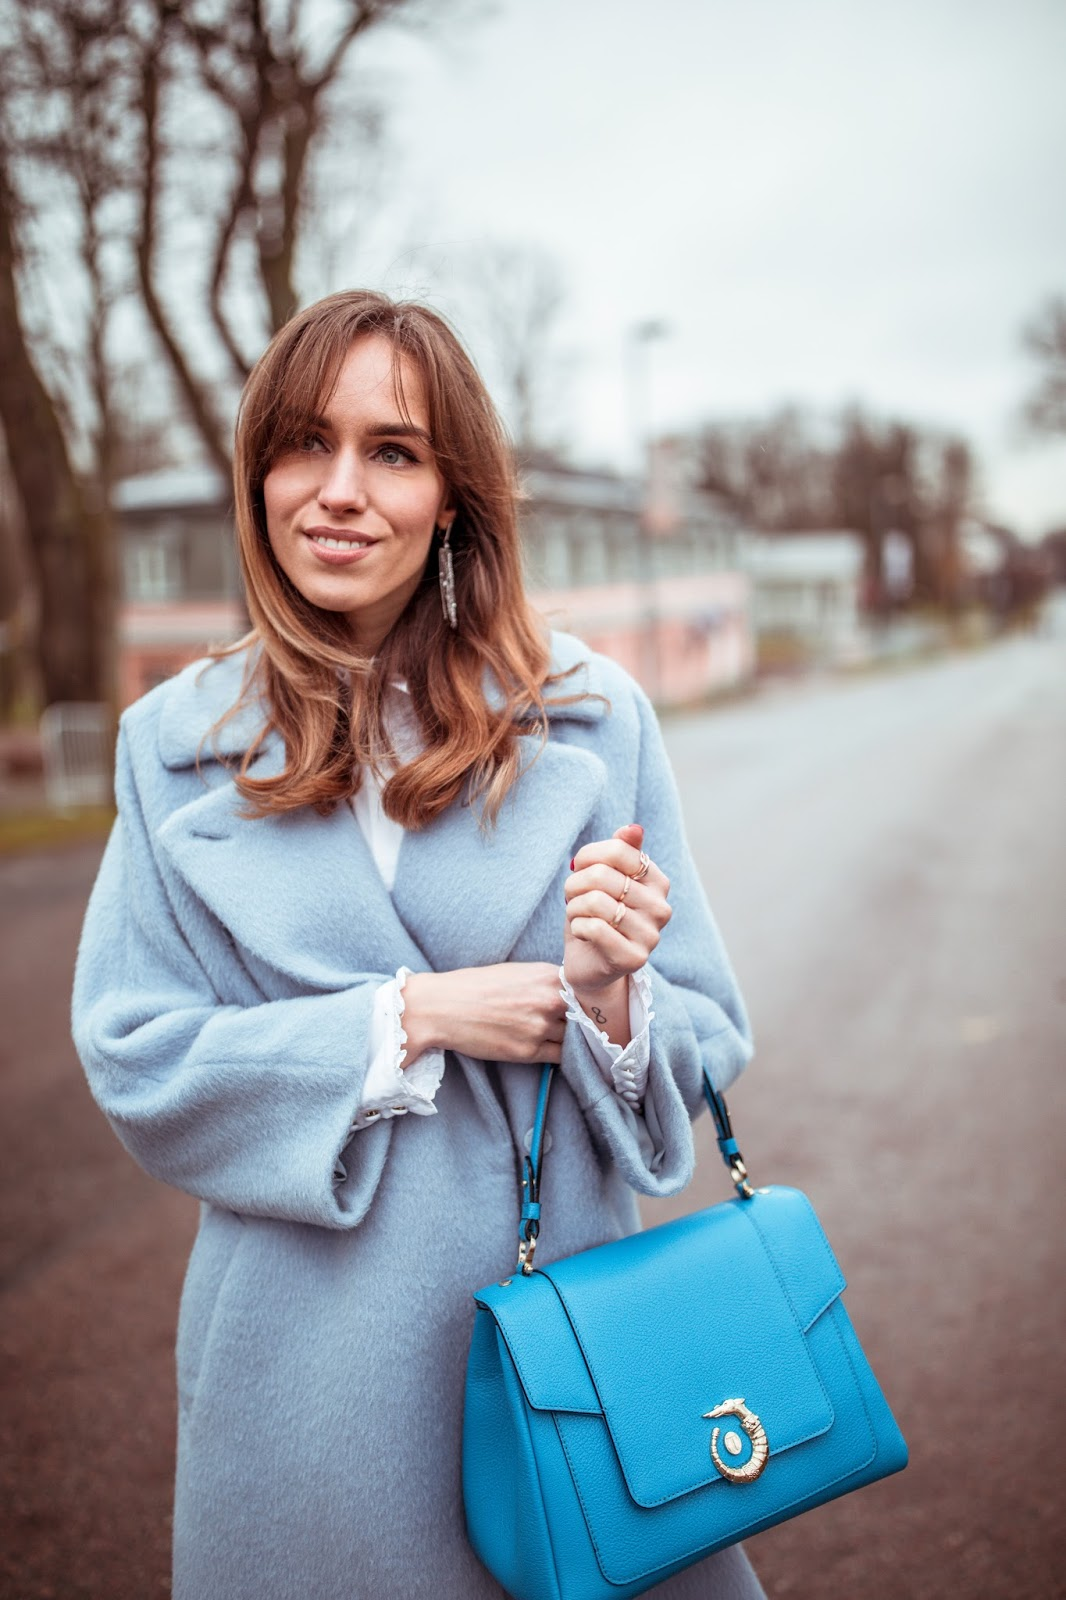 trussardi blue lovy bag outfit fall